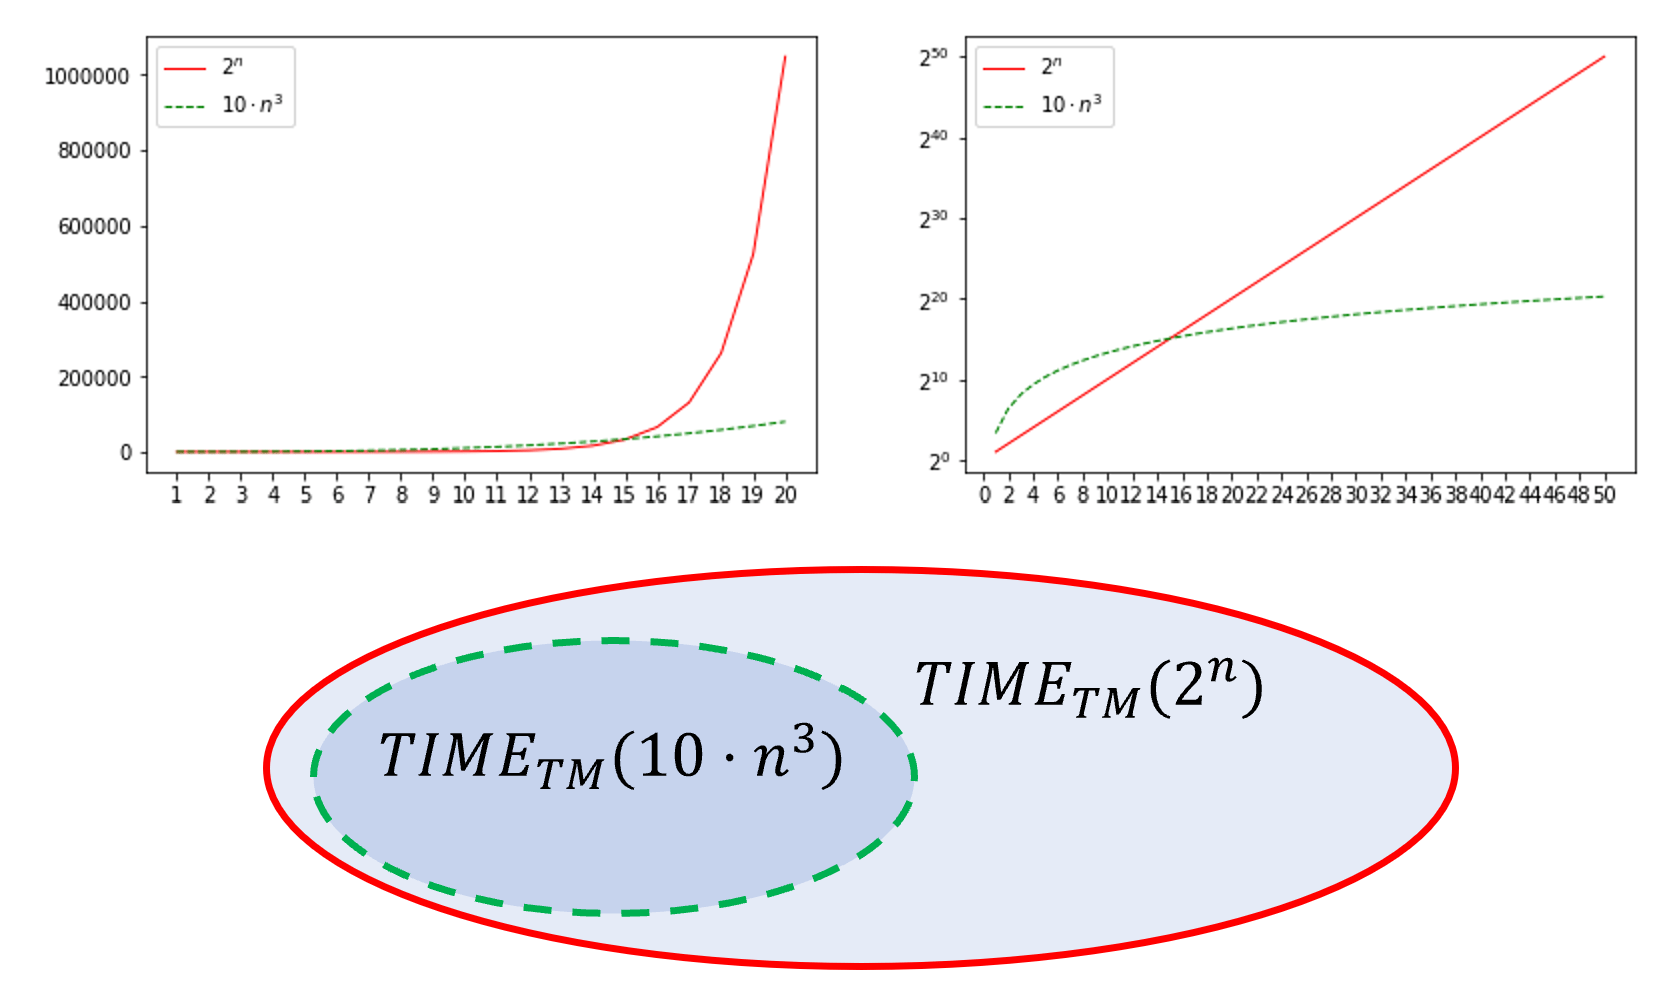 12.2: Comparing T(n)=10n^3 with T'(n) = 2^n (on the right figure the Y axis is in log scale). Since for every large enough n, T'(n) \geq T(n), \ensuremath{\mathit{TIME}}_{\mathsf{TM}}(T(n)) \subseteq \ensuremath{\mathit{TIME}}_{\mathsf{TM}}(T'(n)).